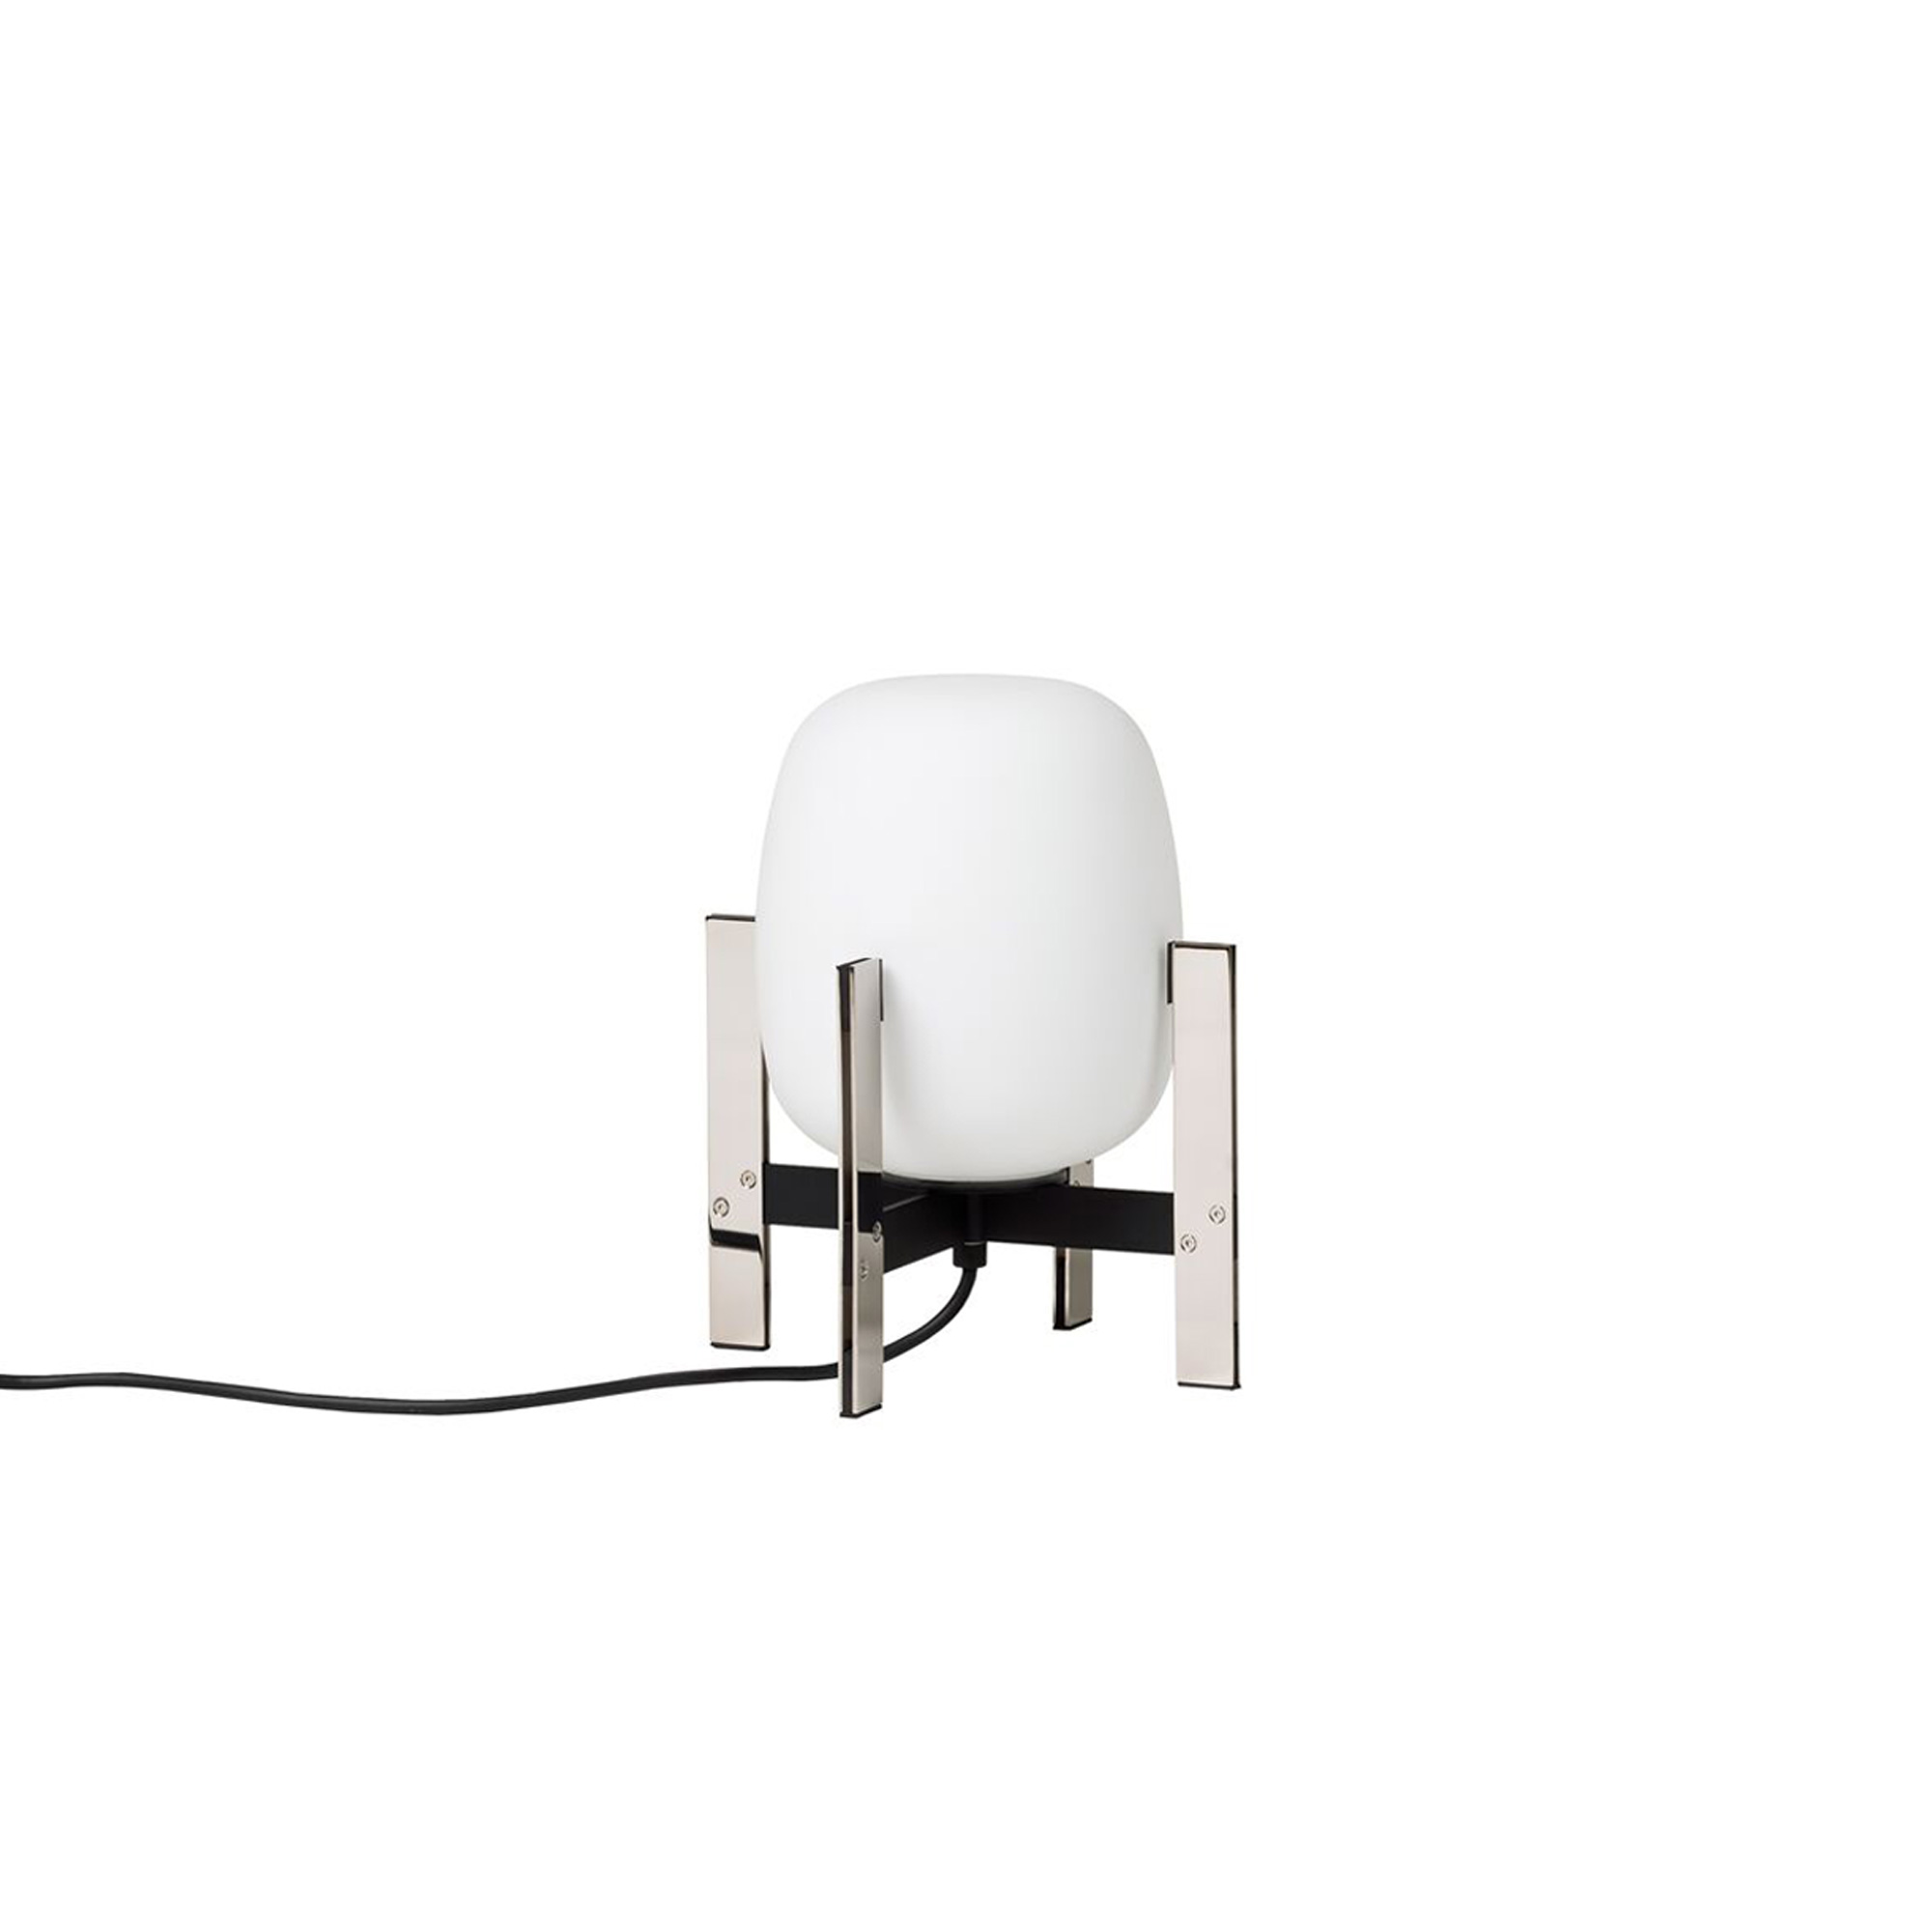 Cestita Metálica Table Lamp - The Cestita Metálica is meant to stay put, hence it's lack of a handle. Miguel Milá mastered the strength of steel by placing at its centre a delicate opal glass silhouette. A seamless expression of strength and emotion, combined with everyday practicality. Just like its bigger sister, the Cestita can be positioned in any corner or shelf, enhancing everything it illuminates. The lantern is produced and assembled manually by European craftsmen, using traditional glass blowing techniques for its opal shade.  | Matter of Stuff